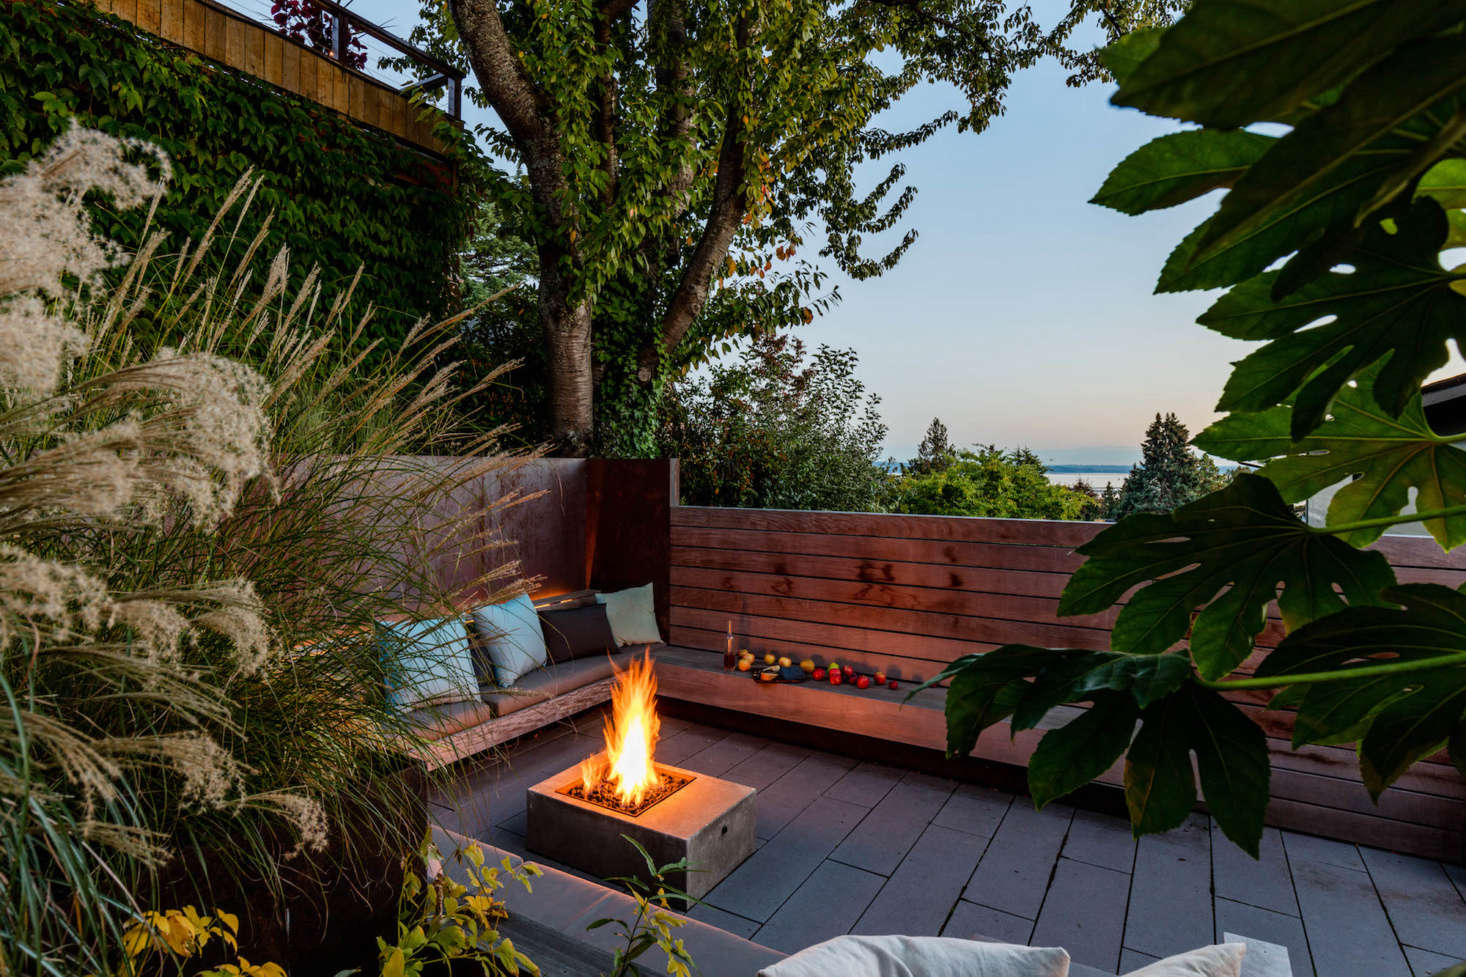 A peek of Lake Washington just beyond the wood wall. The concrete fire pit was designed by Wittman Estes.